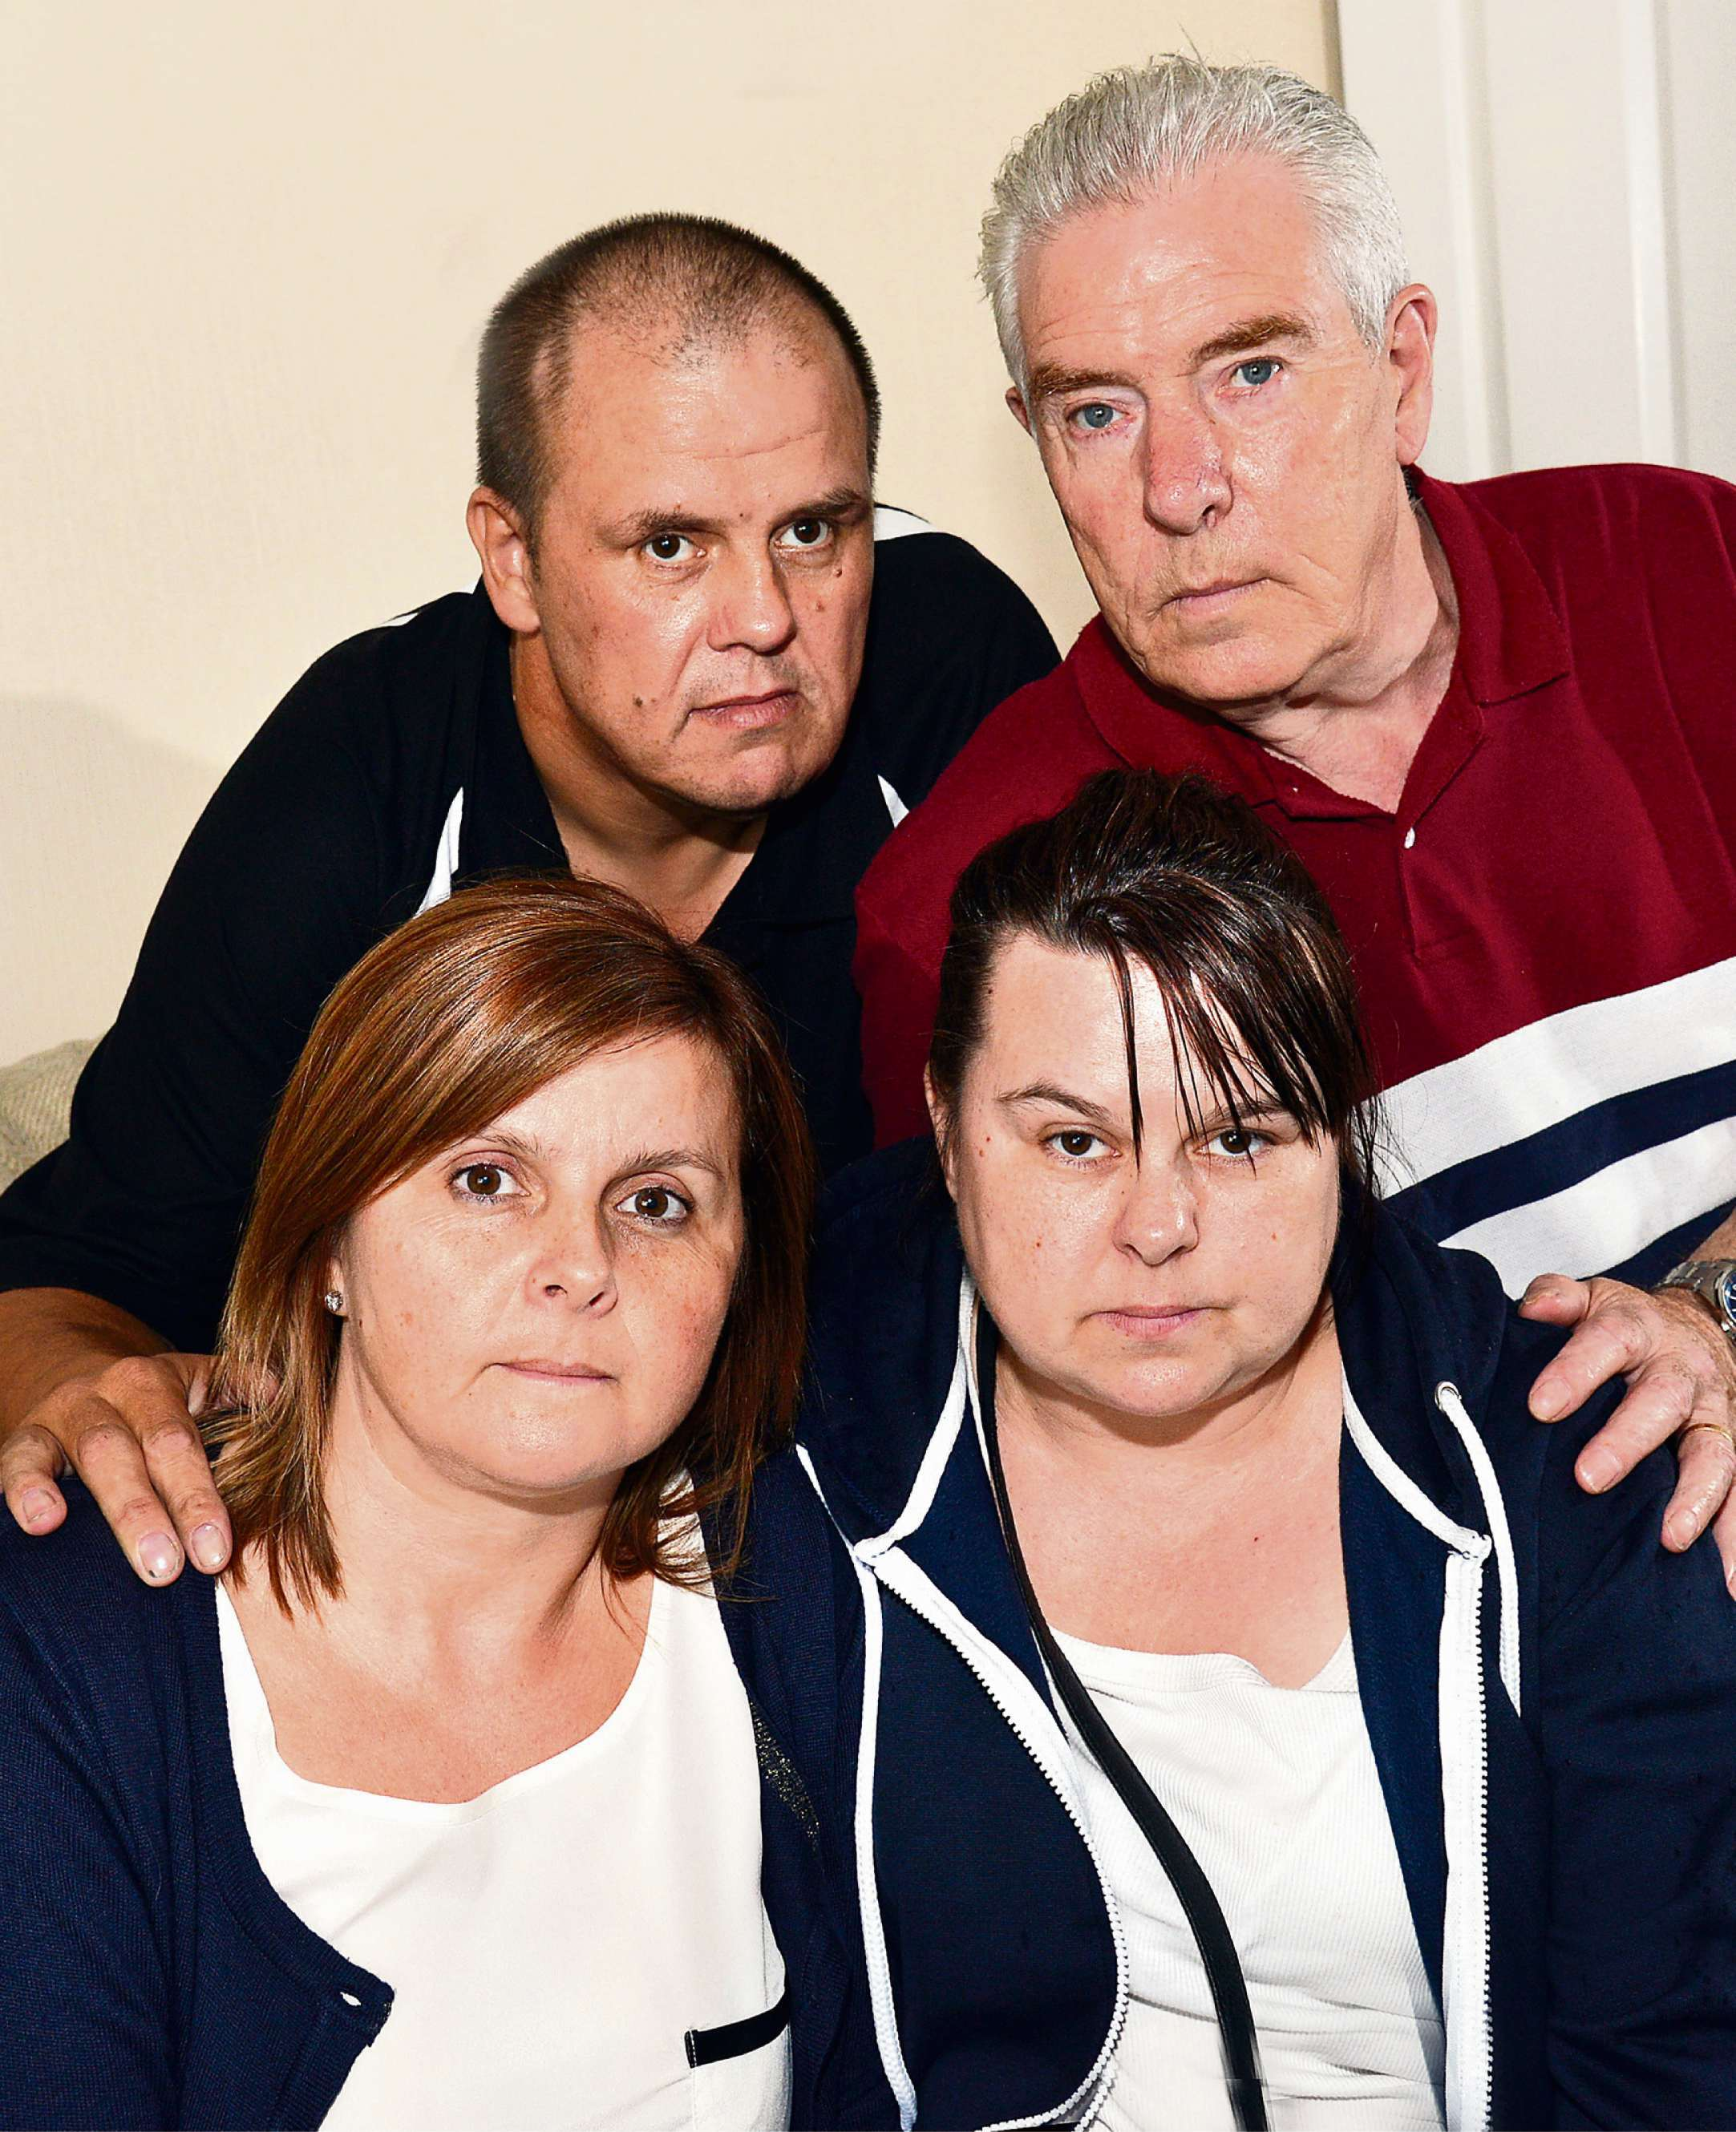 Commissioner backs Bradford family's fight to have deaths re-examined